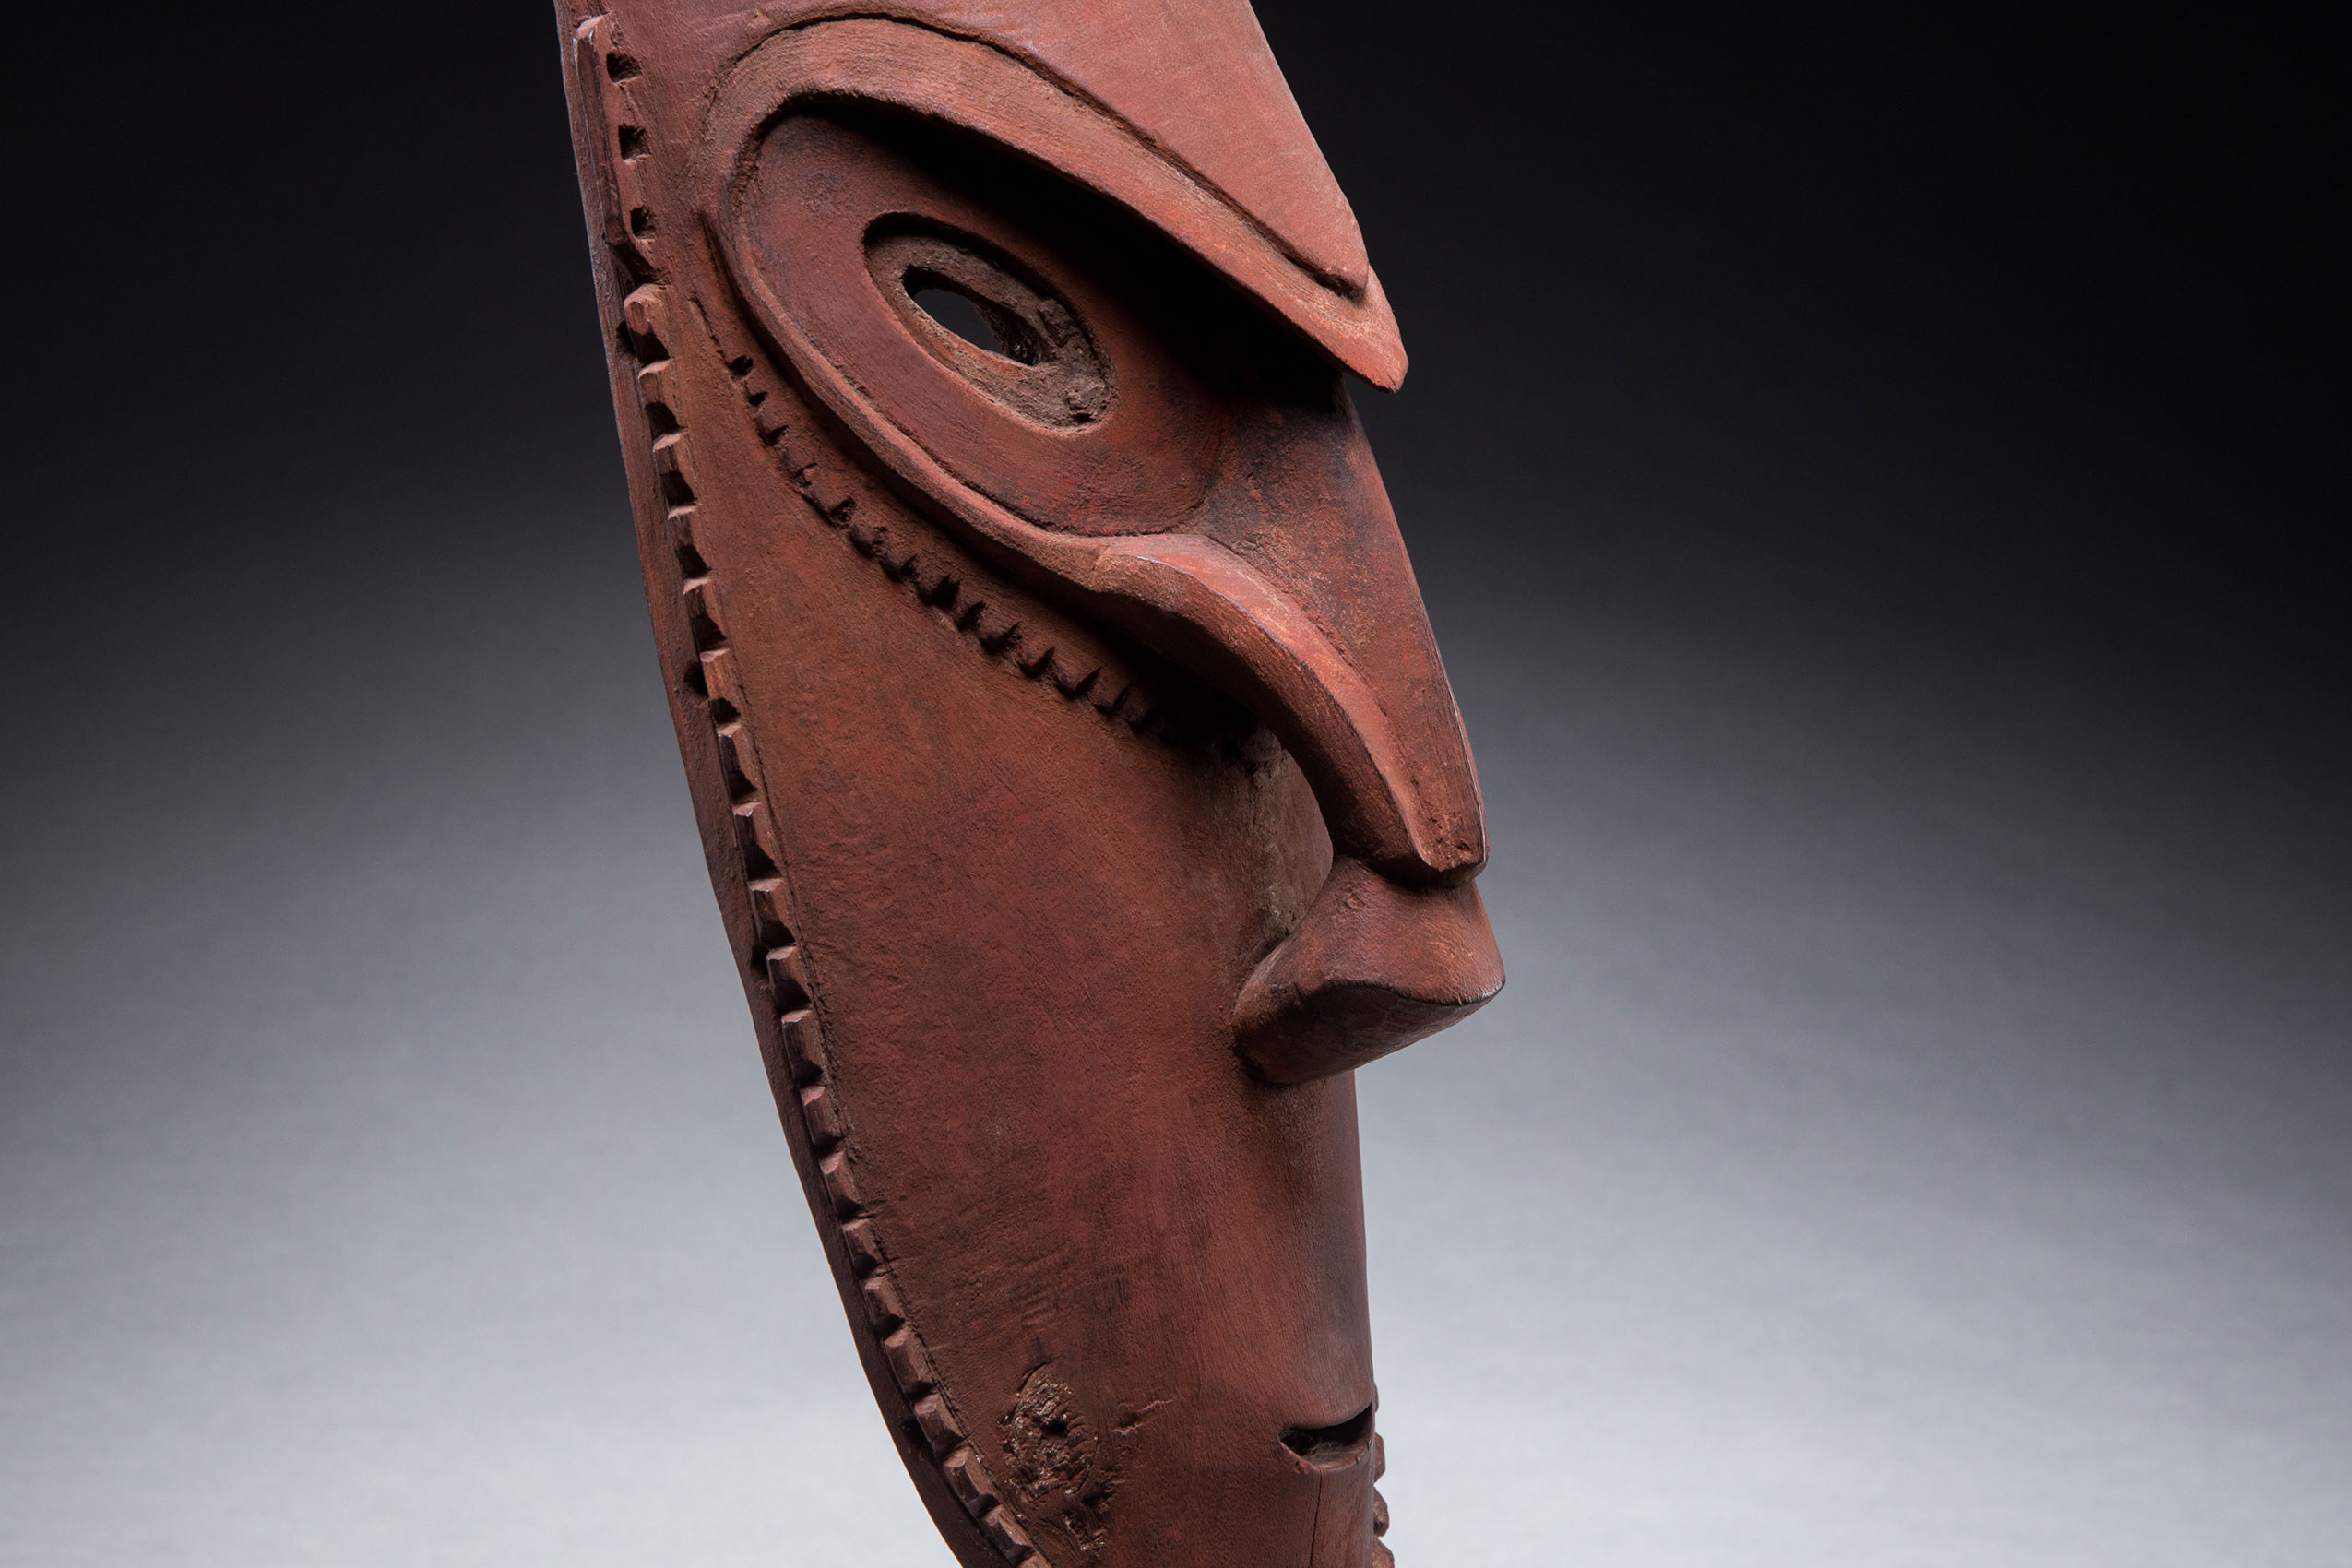 South Pacific art objects and artifacts | Murik Lakes spirit mask